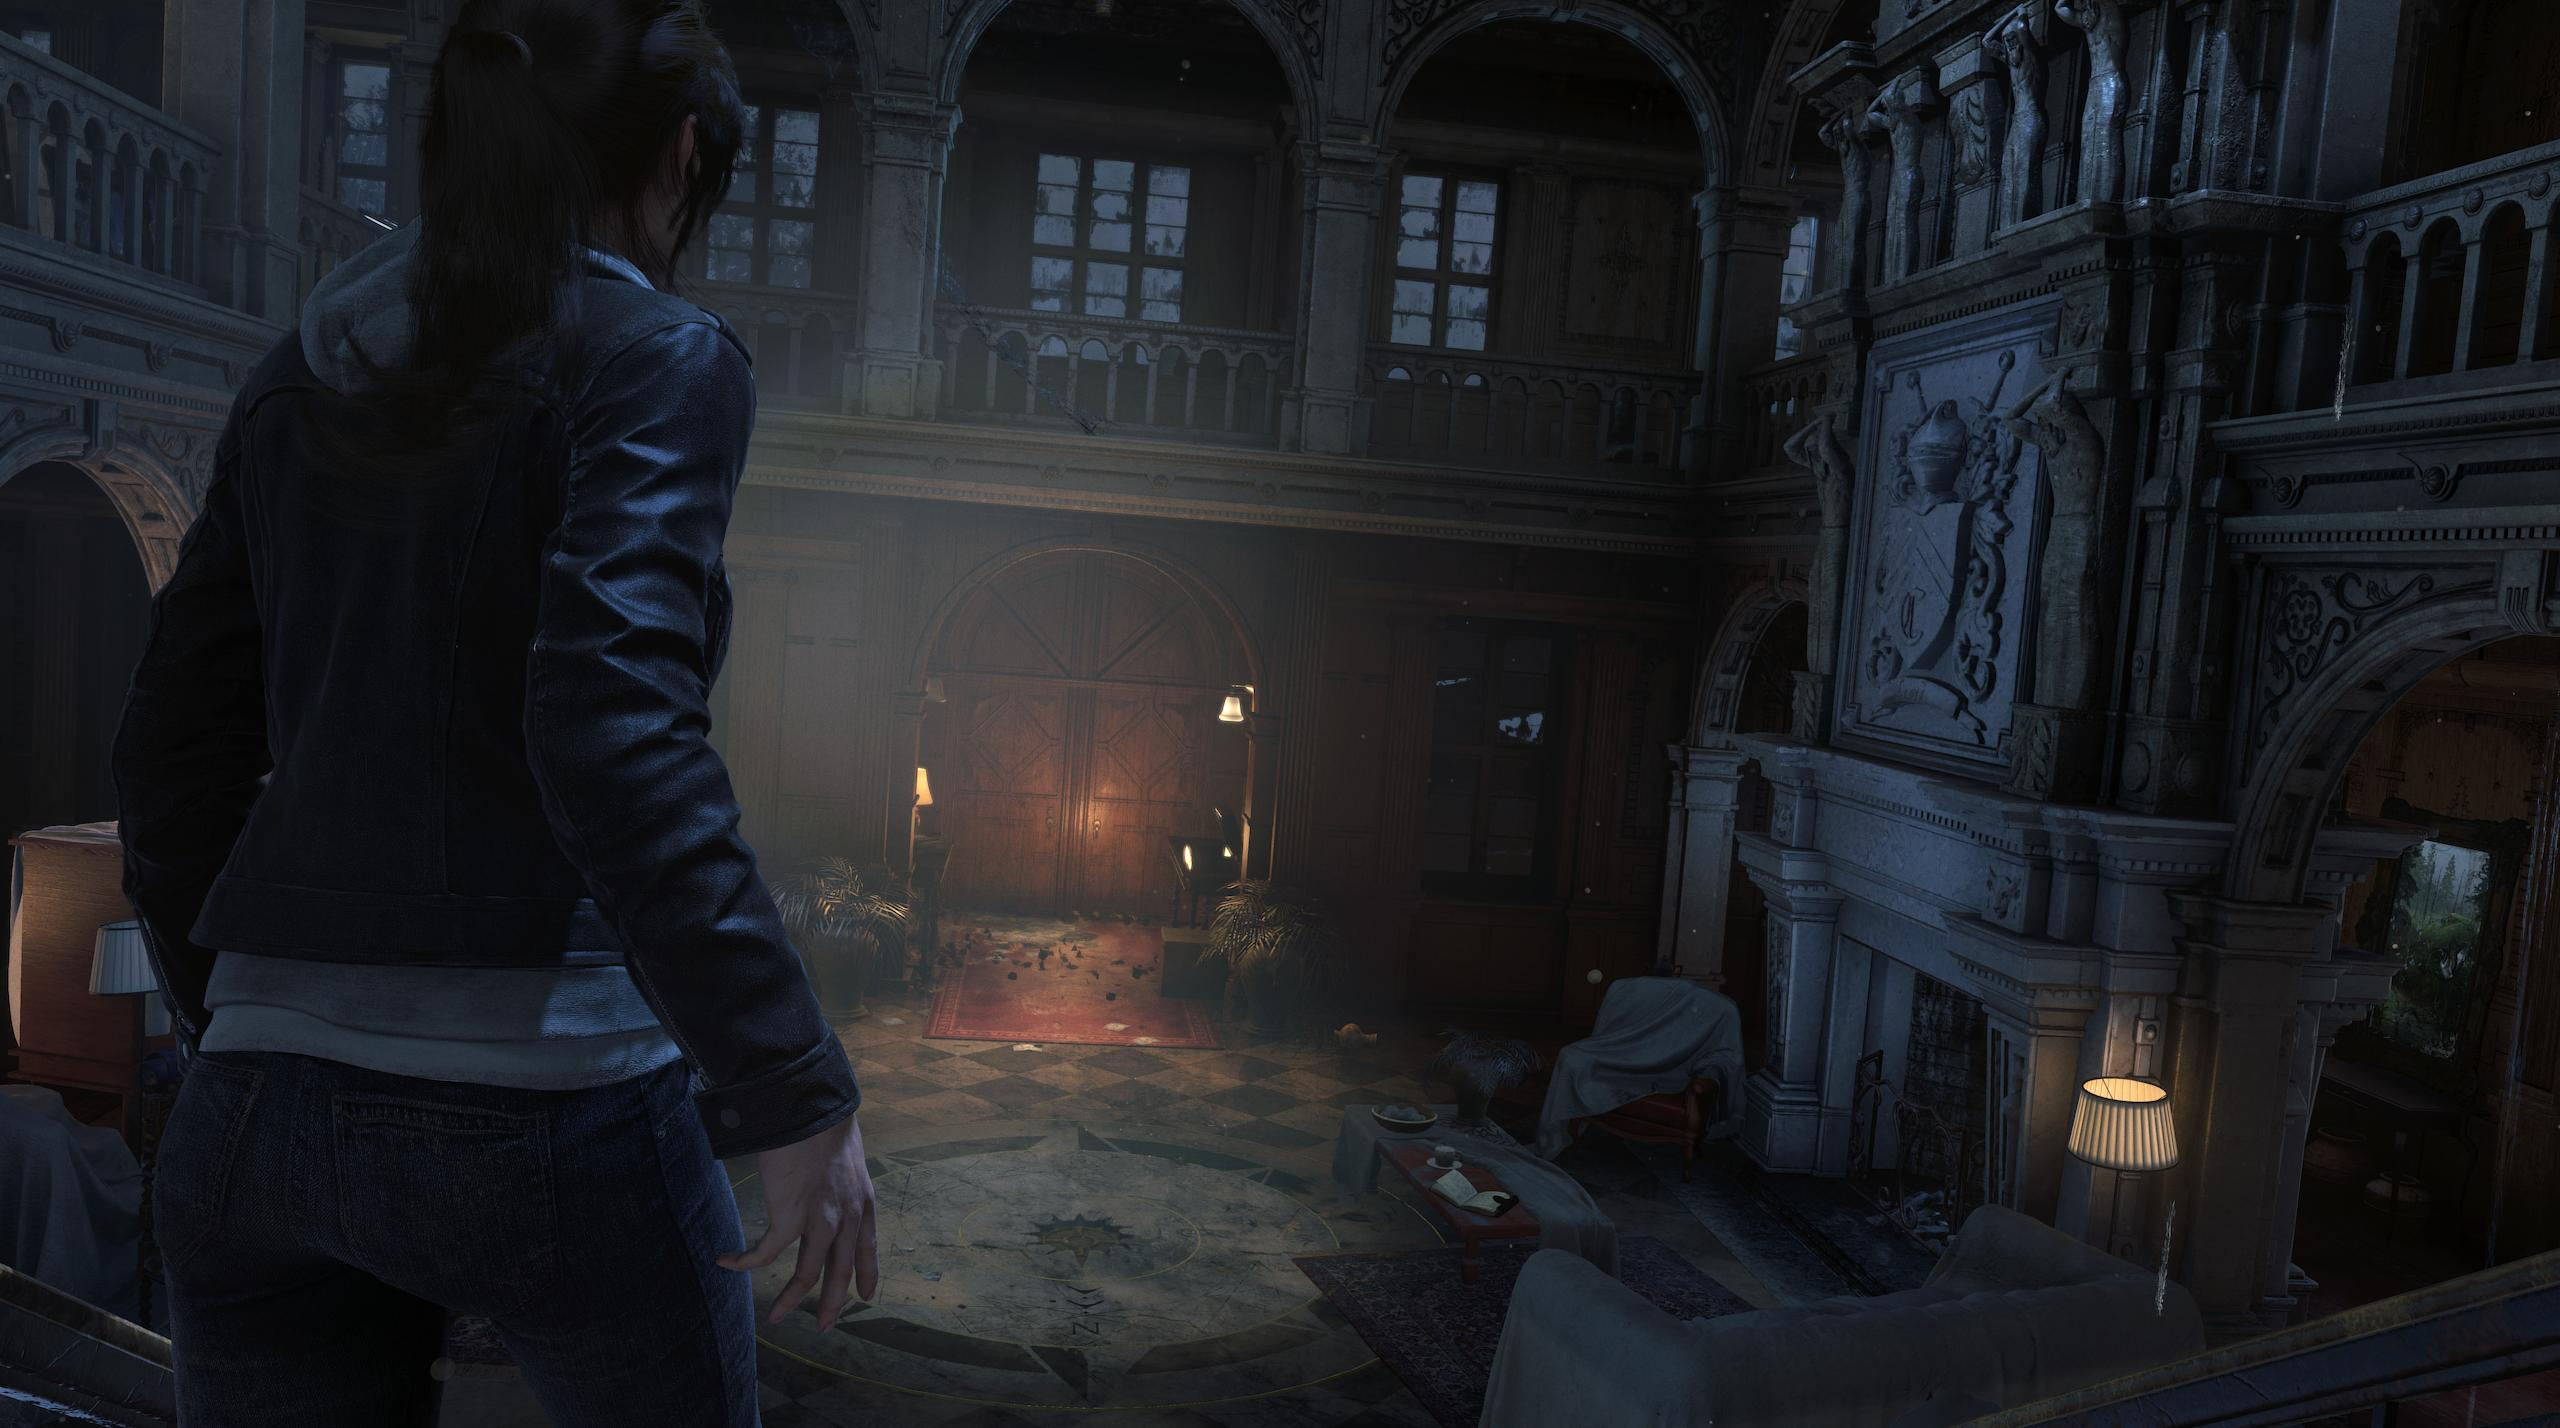 The Croft Manor Dlc For Rise Of The Tomb Raider Is Full Of Easter